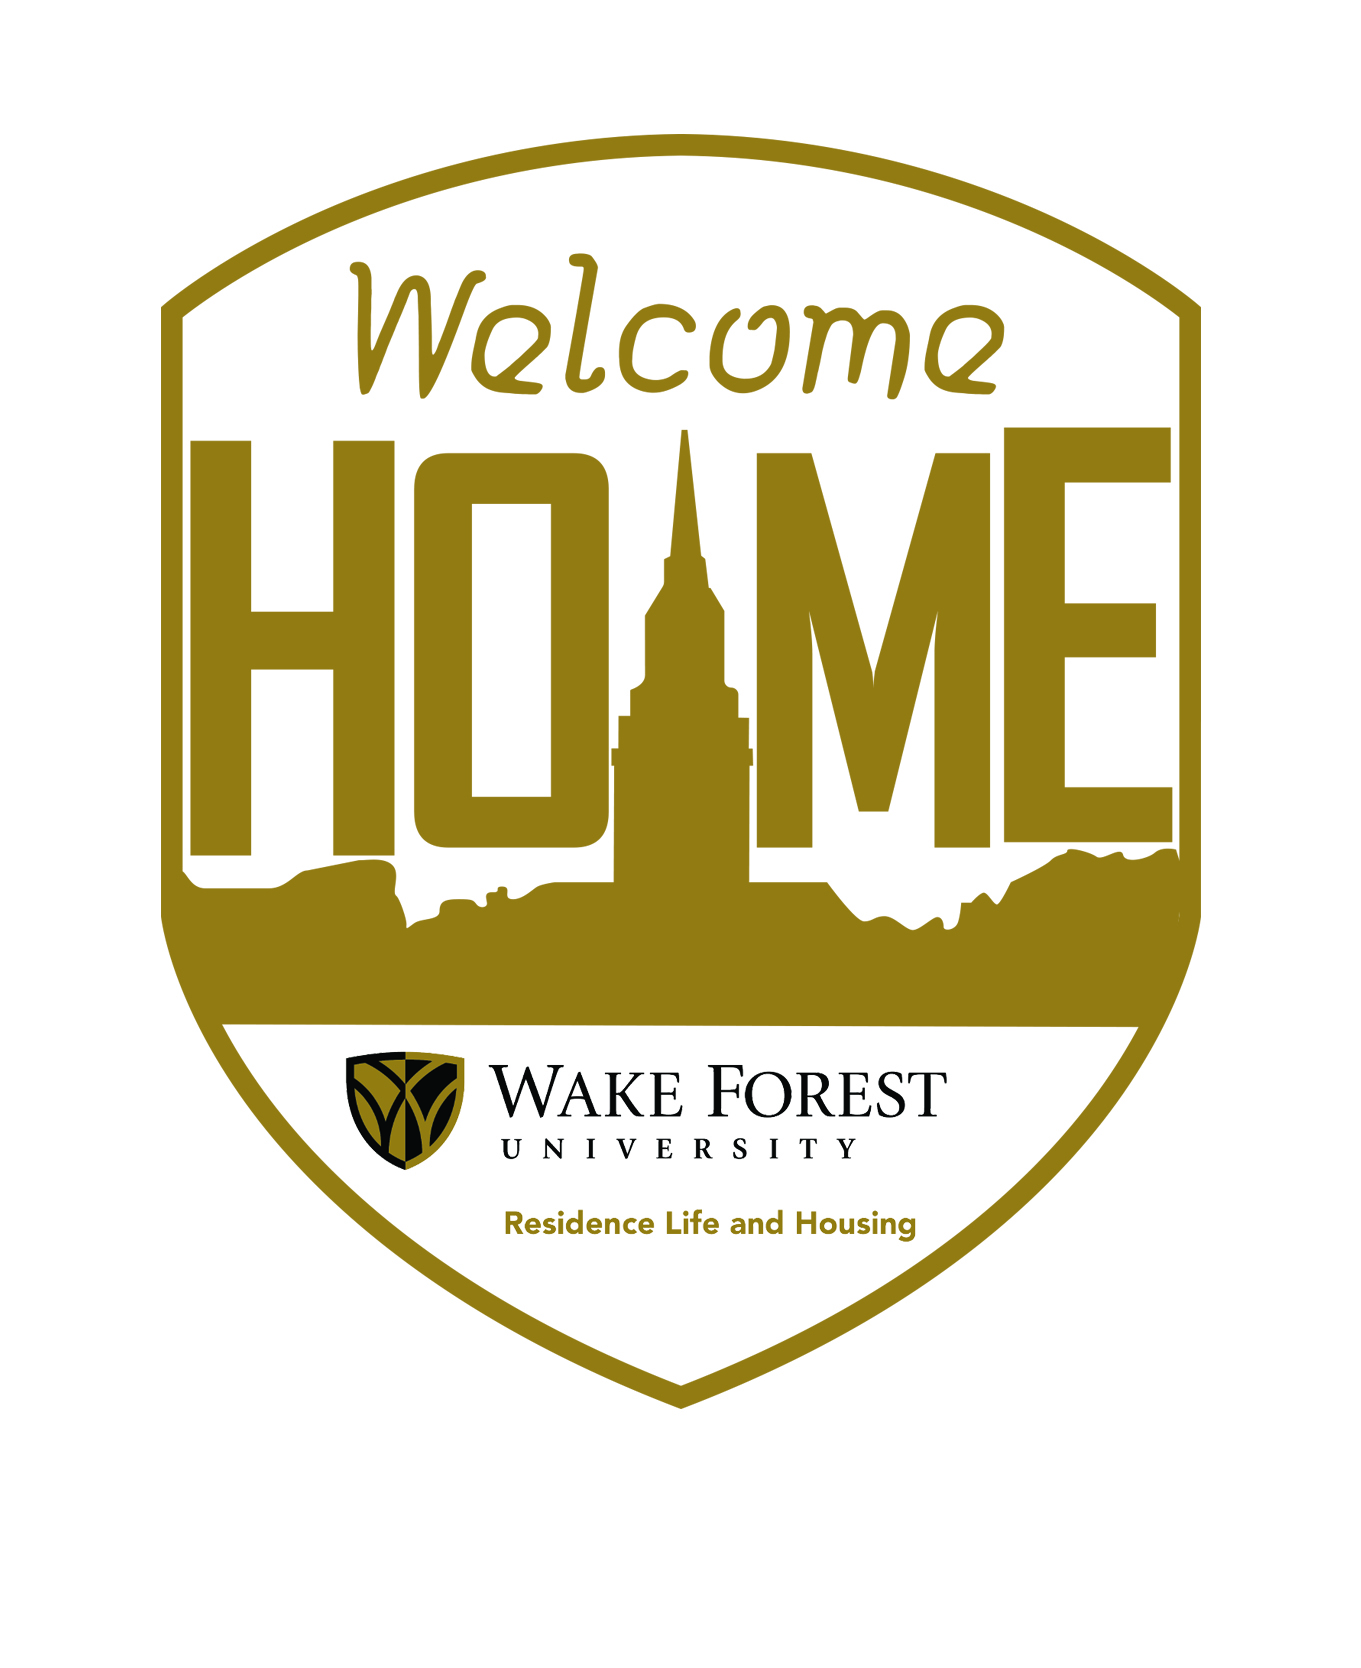 Office Of Residence Life And Housing Welcome Home Gold With Full